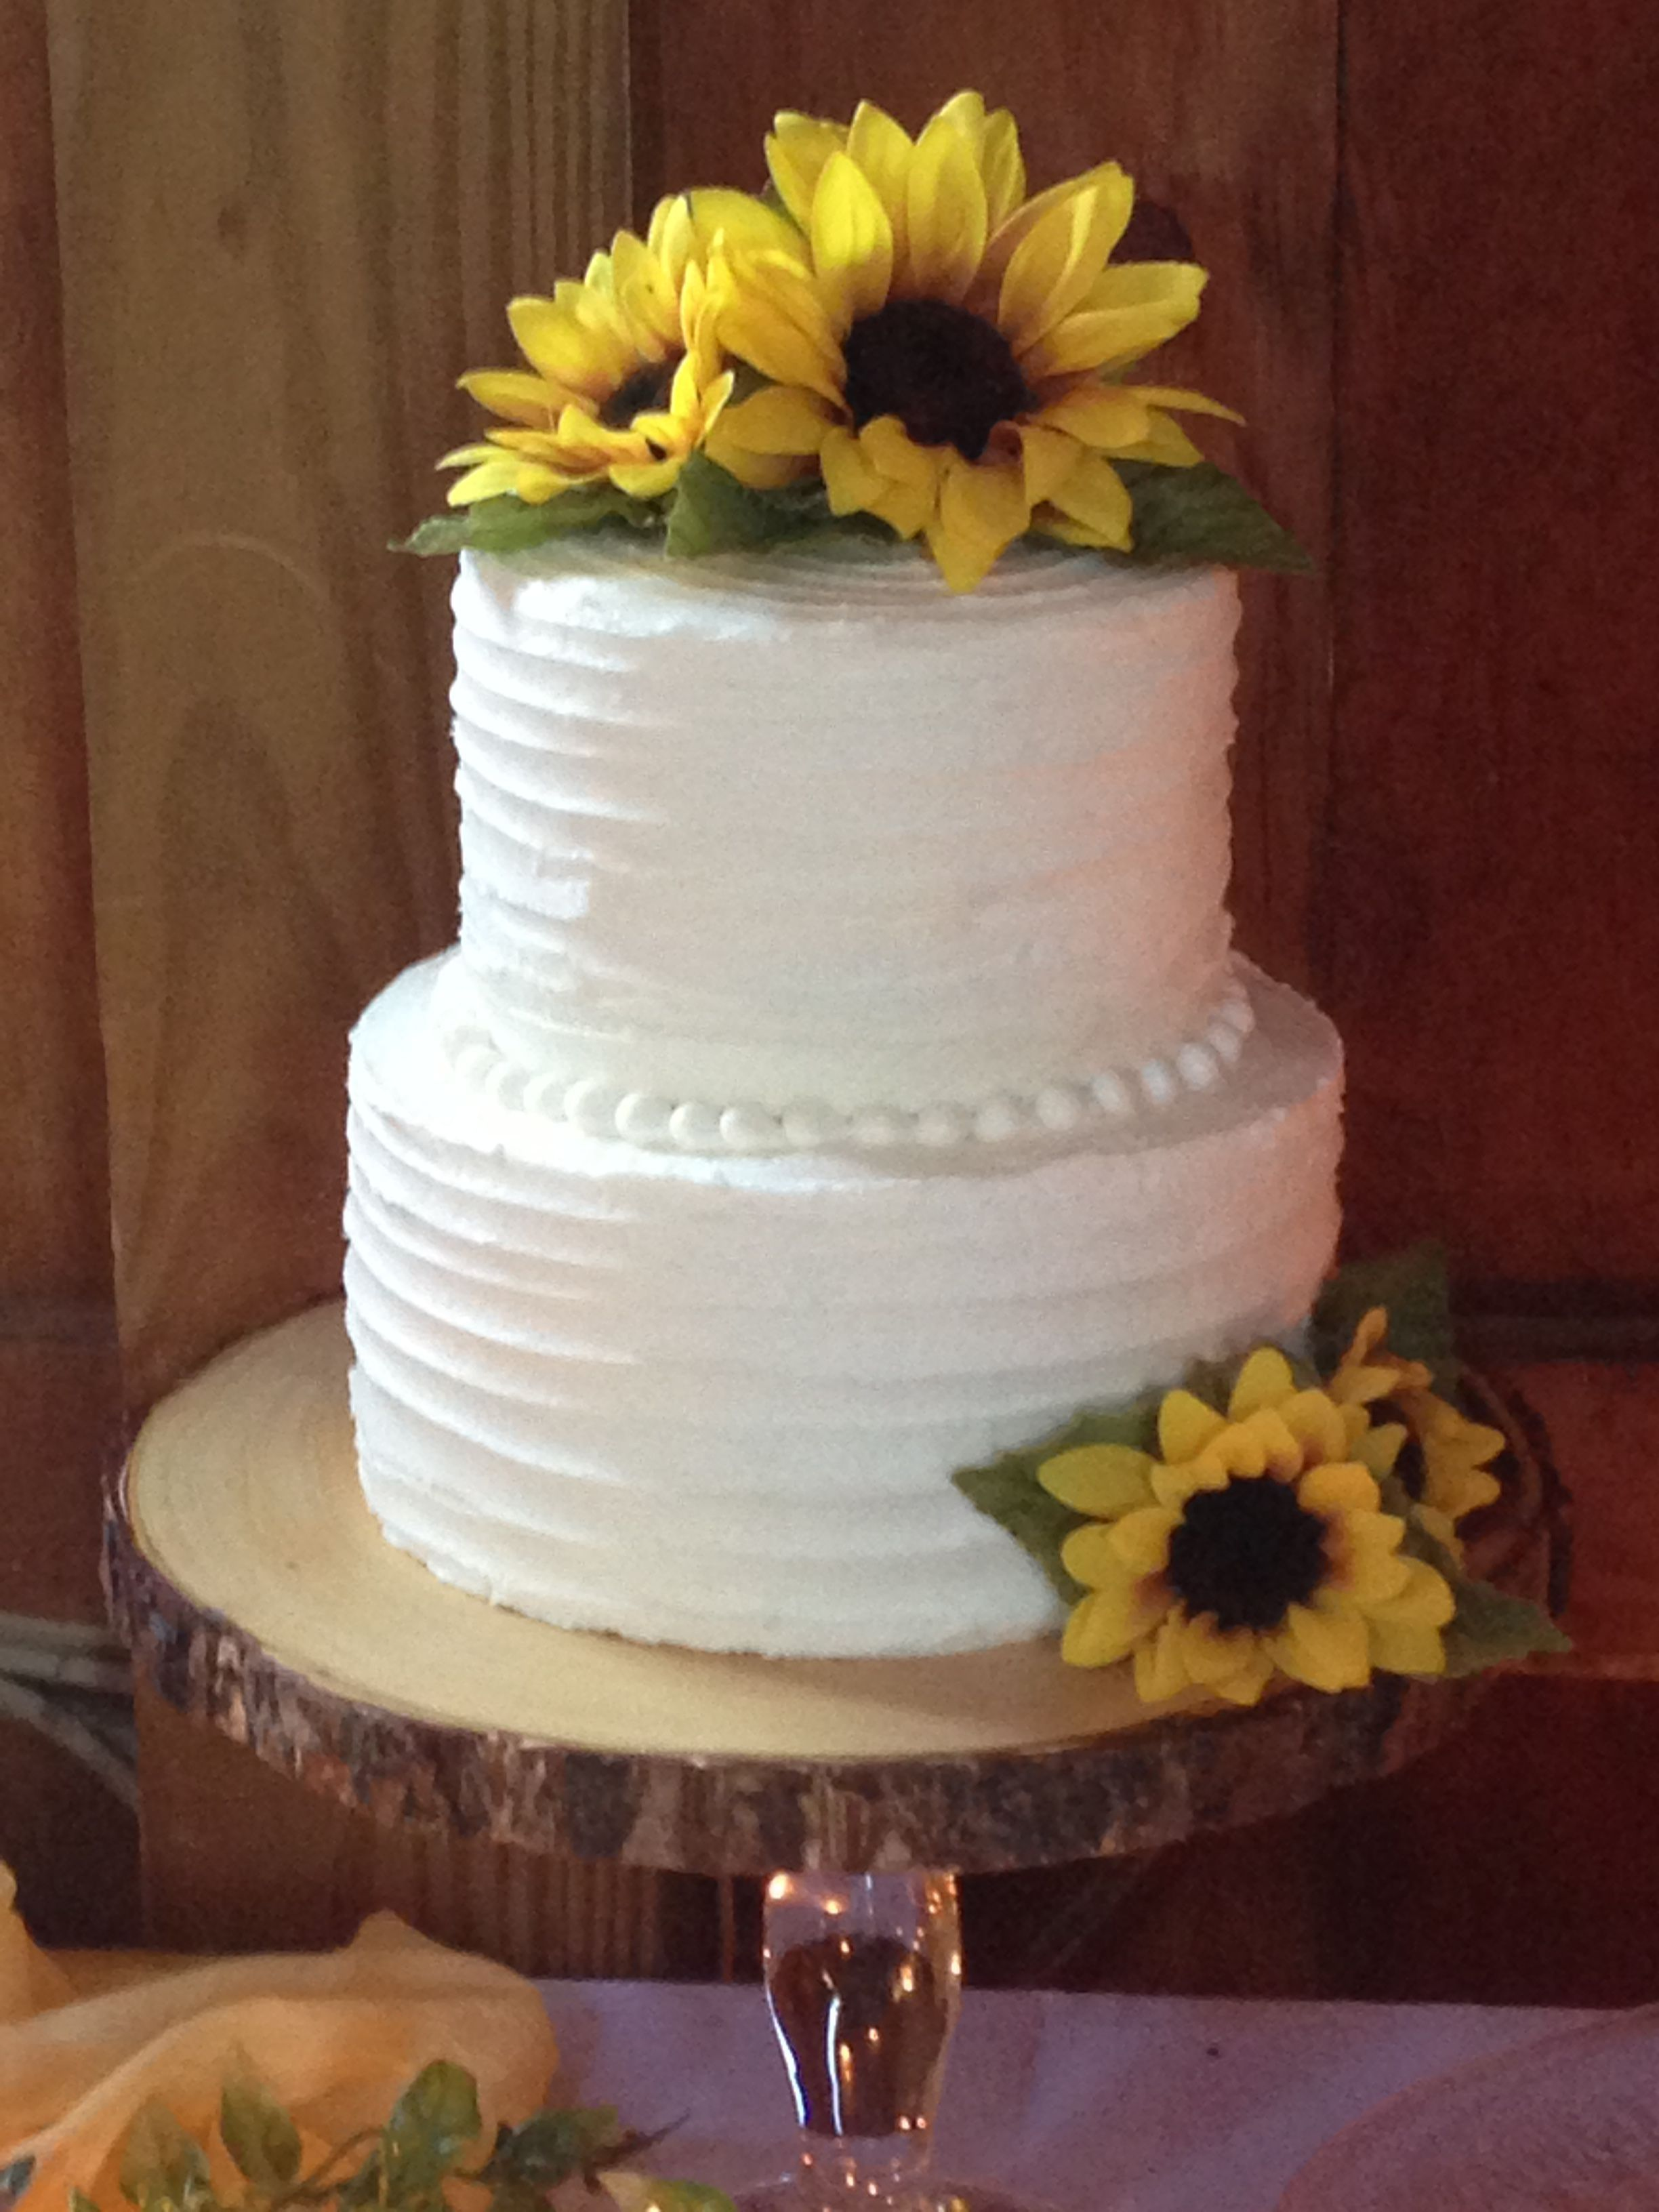 6 8 Chocolate Layer 2 Tier Wedding Cake Rustic Iced In White